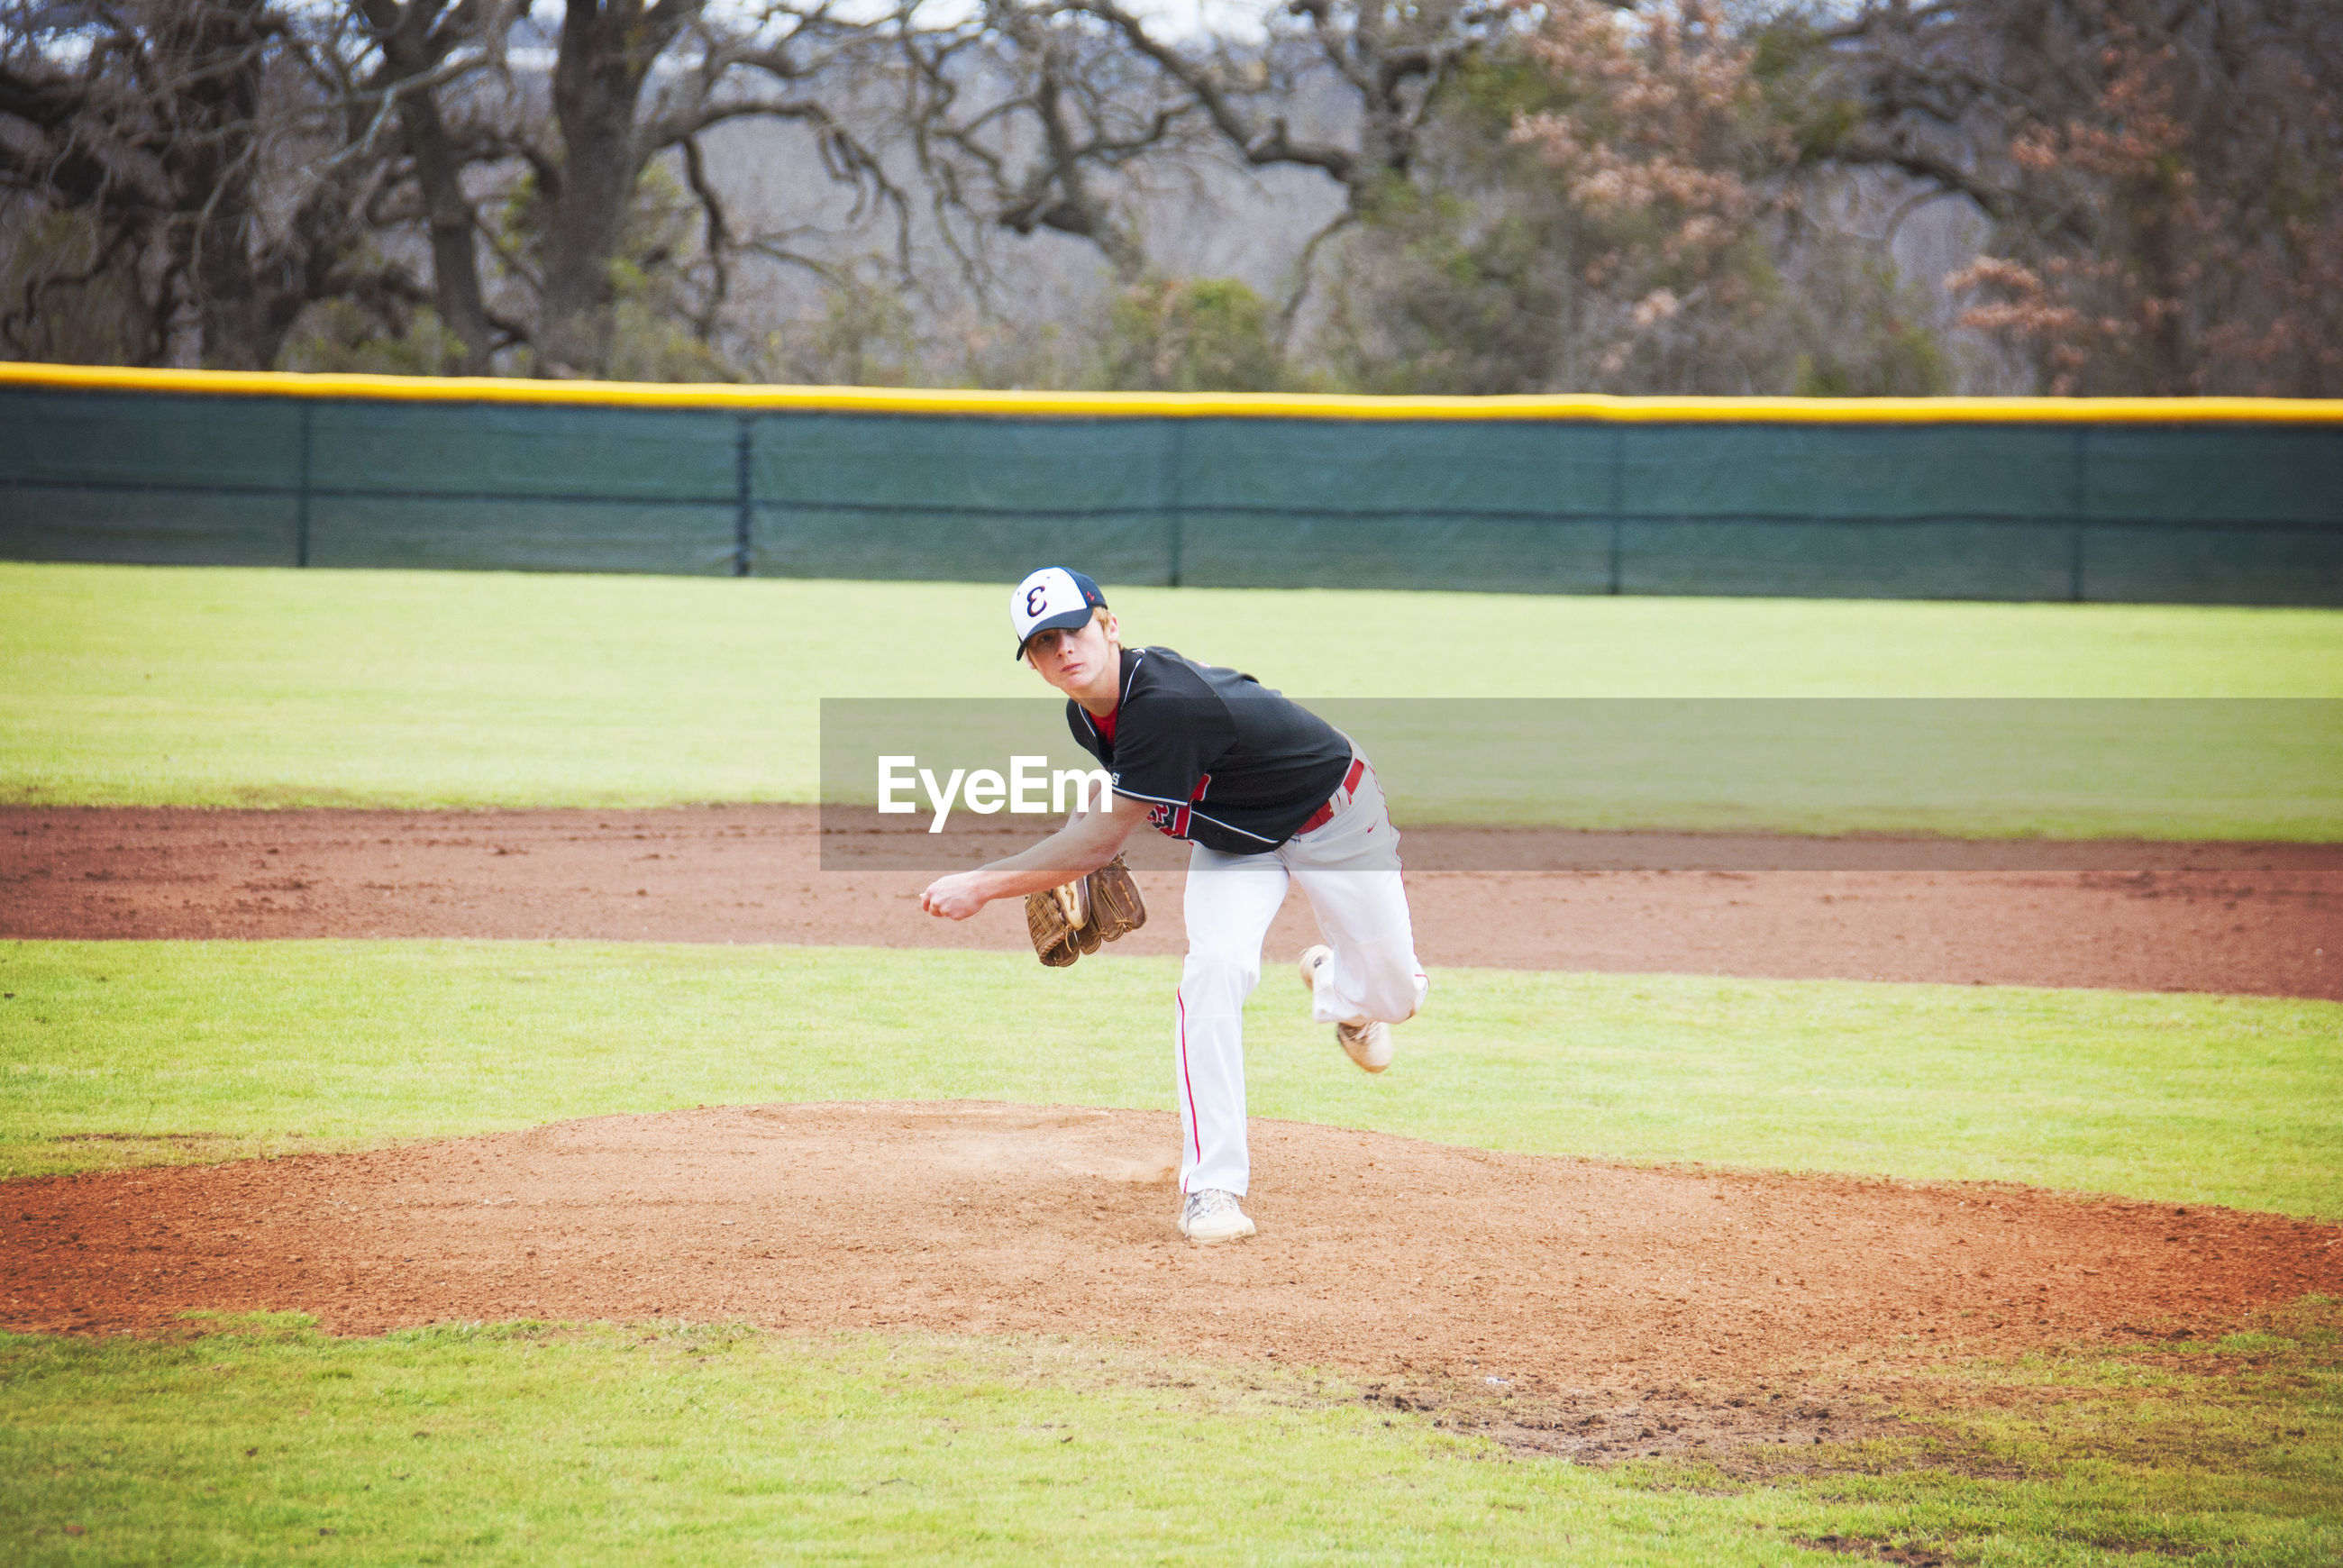 Baseball pitcher throwing on field